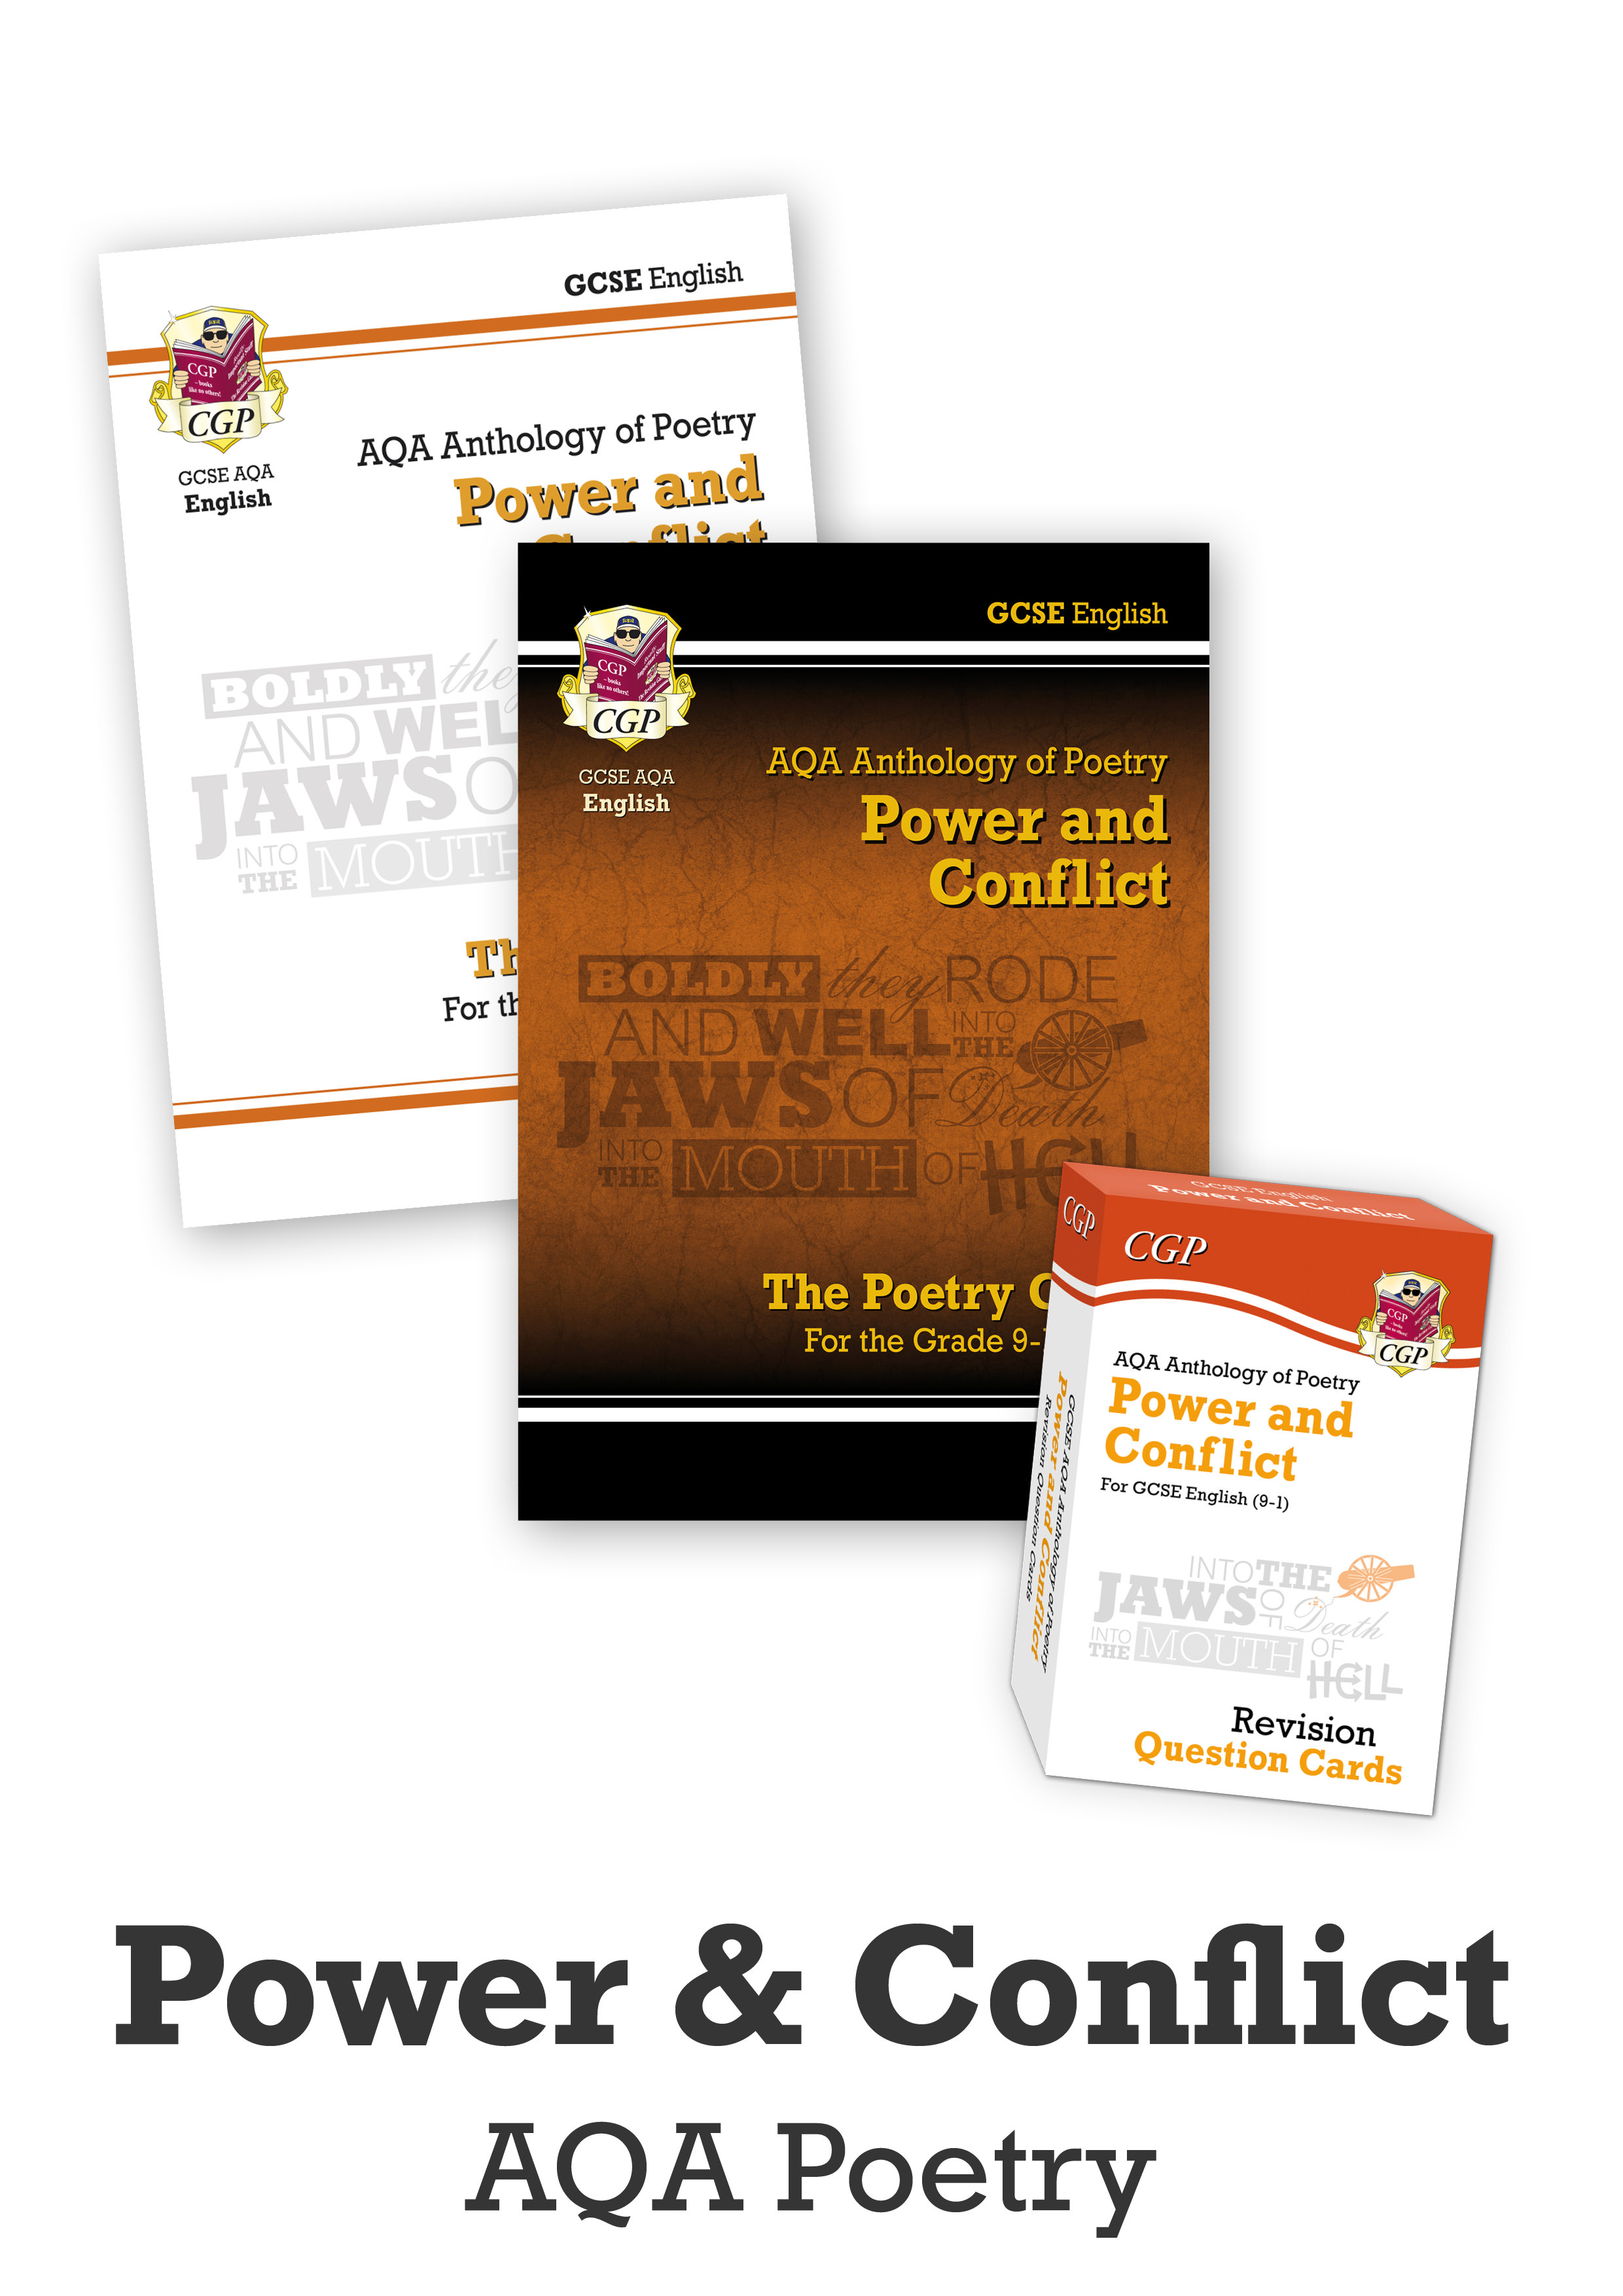 ACHCUB41 - GCSE Home Learning Essentials Bundle: English Literature AQA Poetry - Power & Conflict